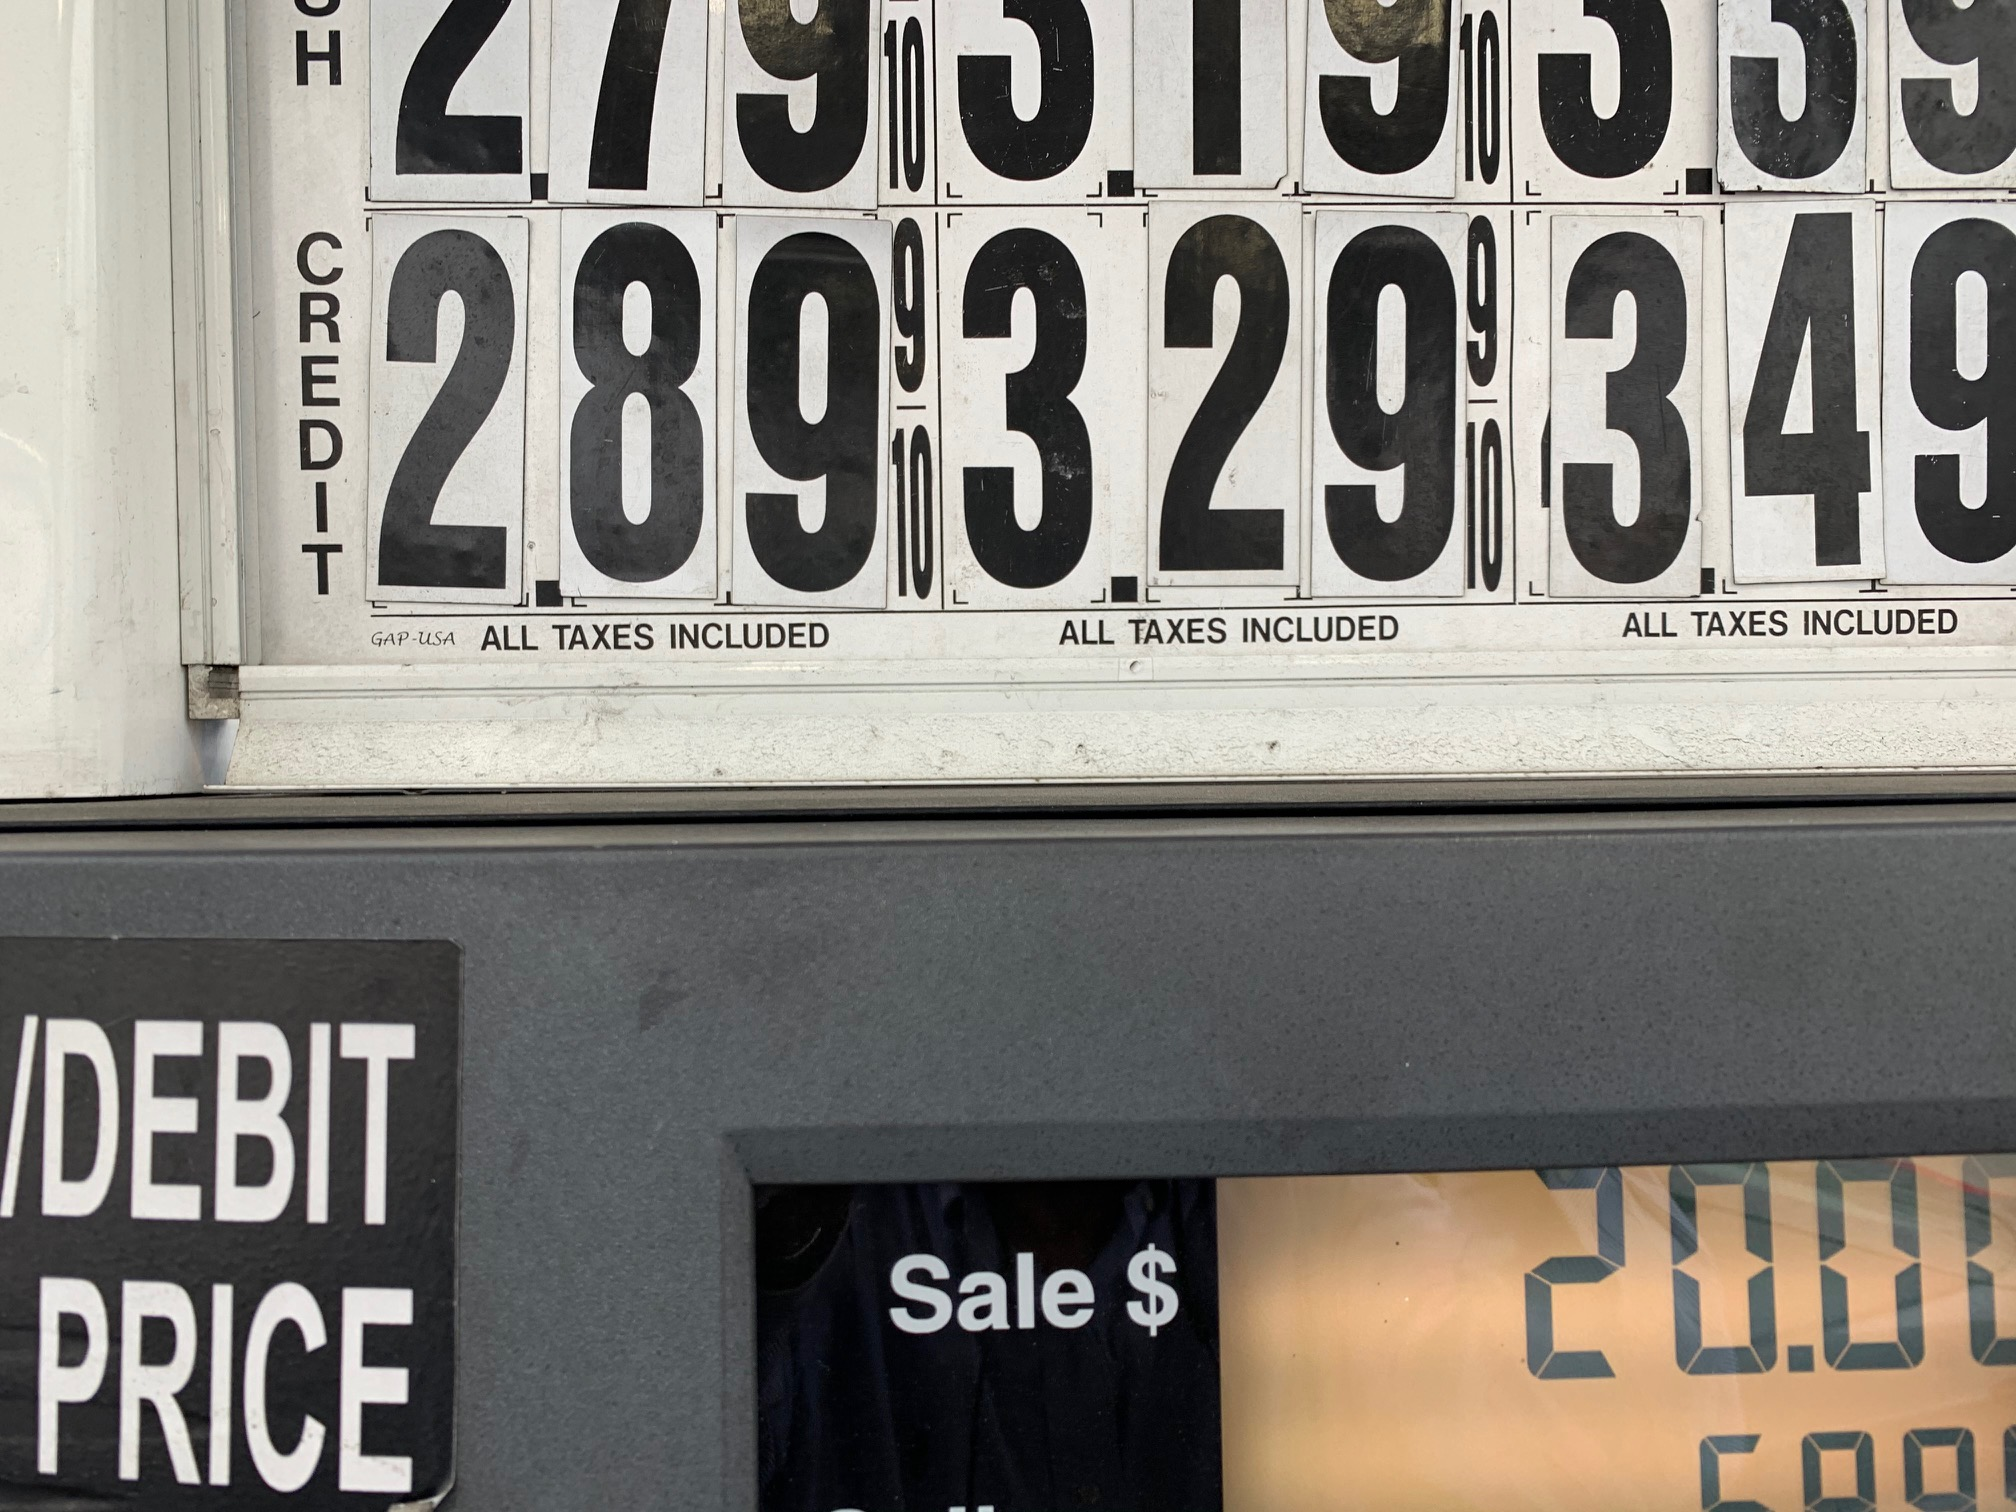 Branded Gas w C-Store for sale in Suffolk Cty